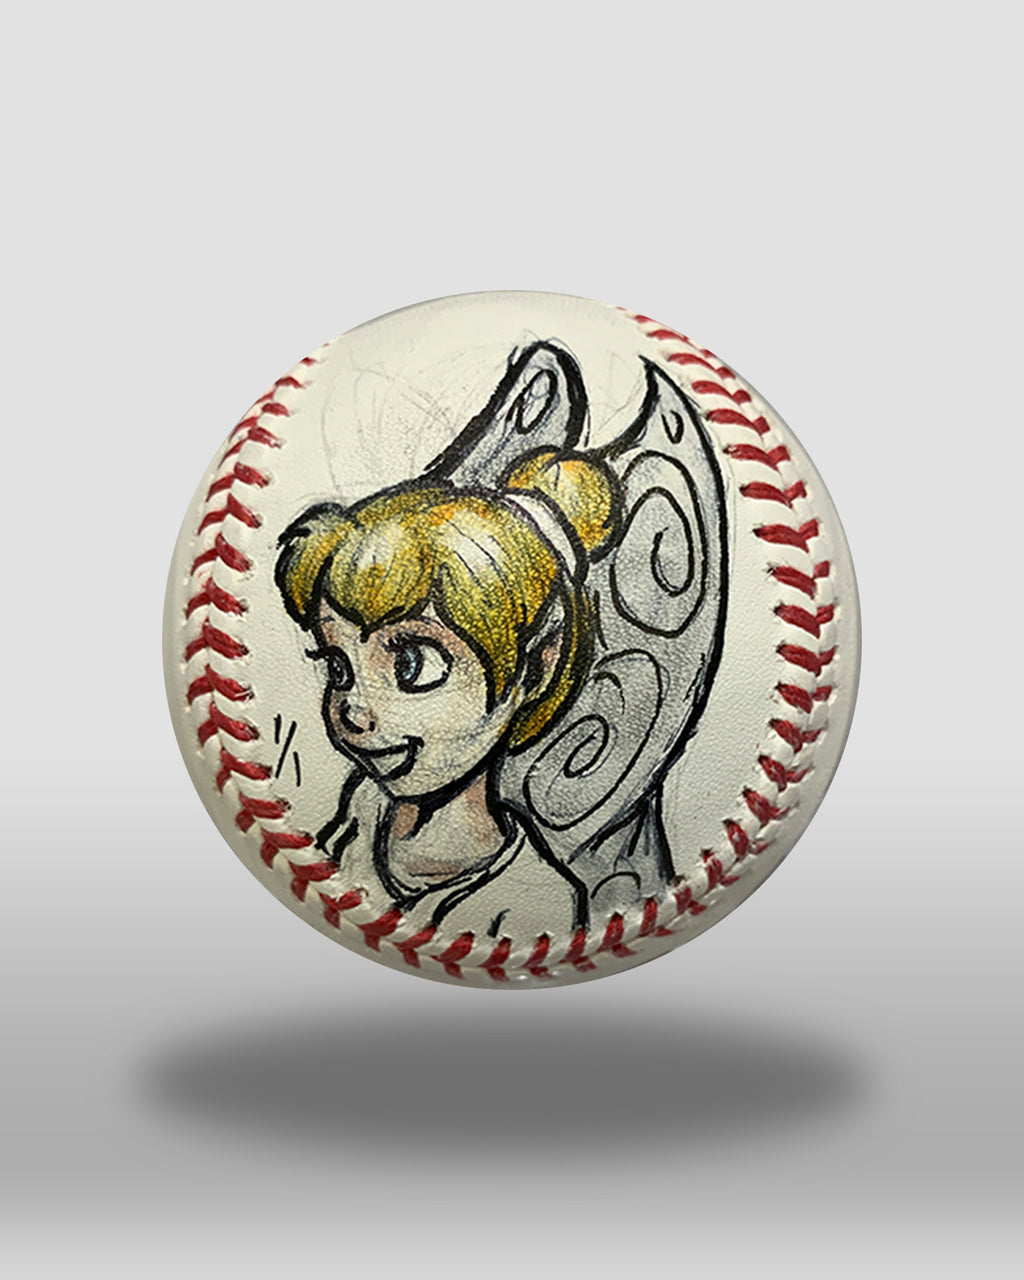 Princess Tinkerbell Hand-Drawn Baseball Art